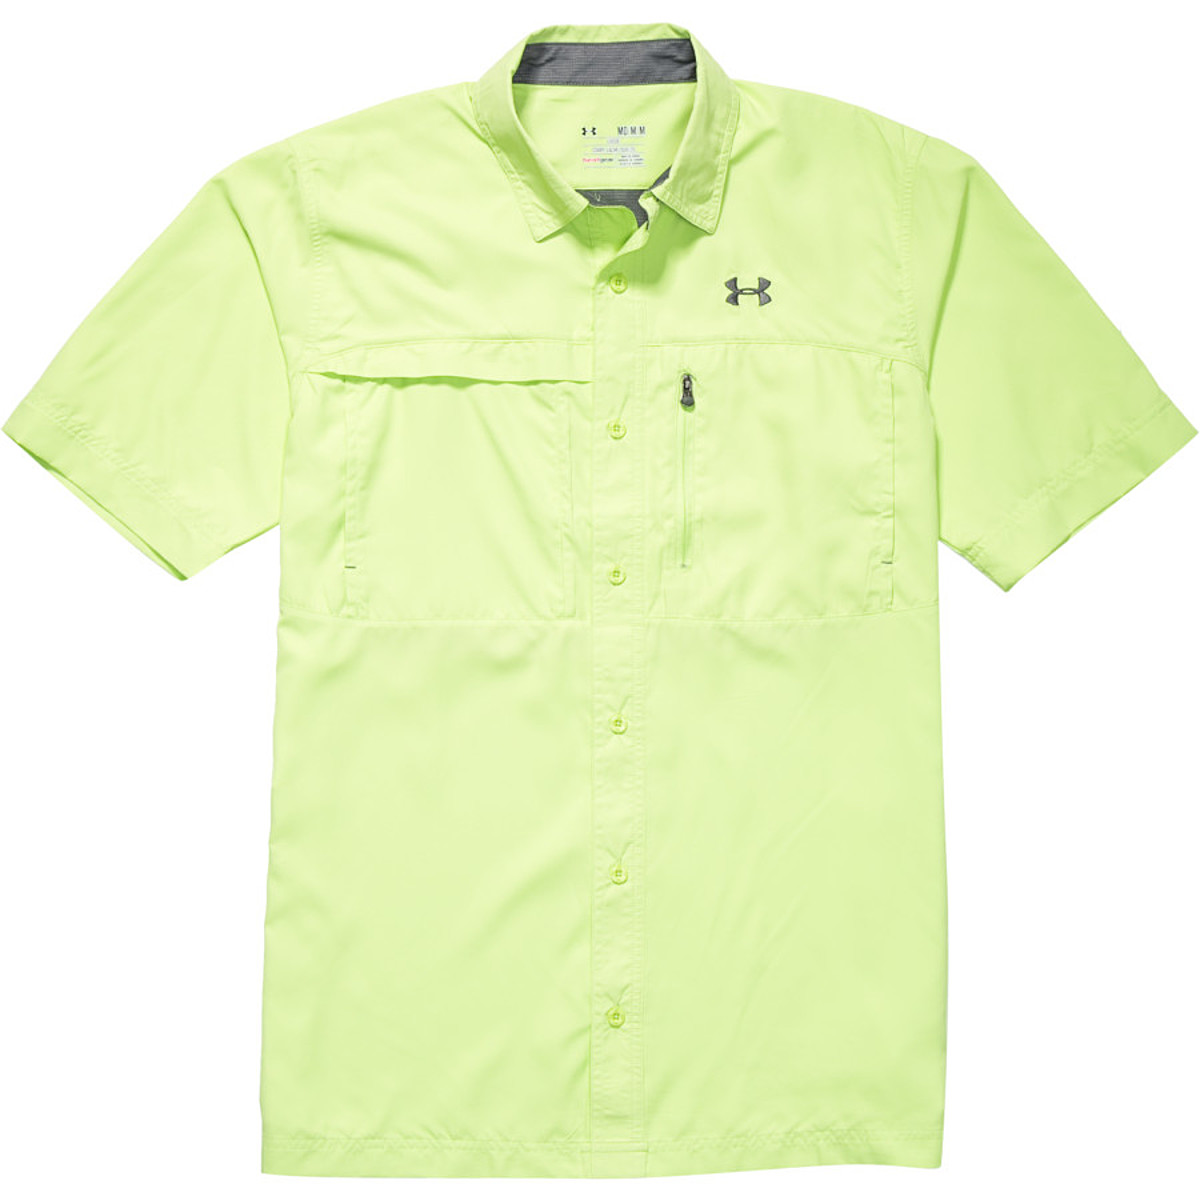 Under Armour Flats Guide II Shortsleeve